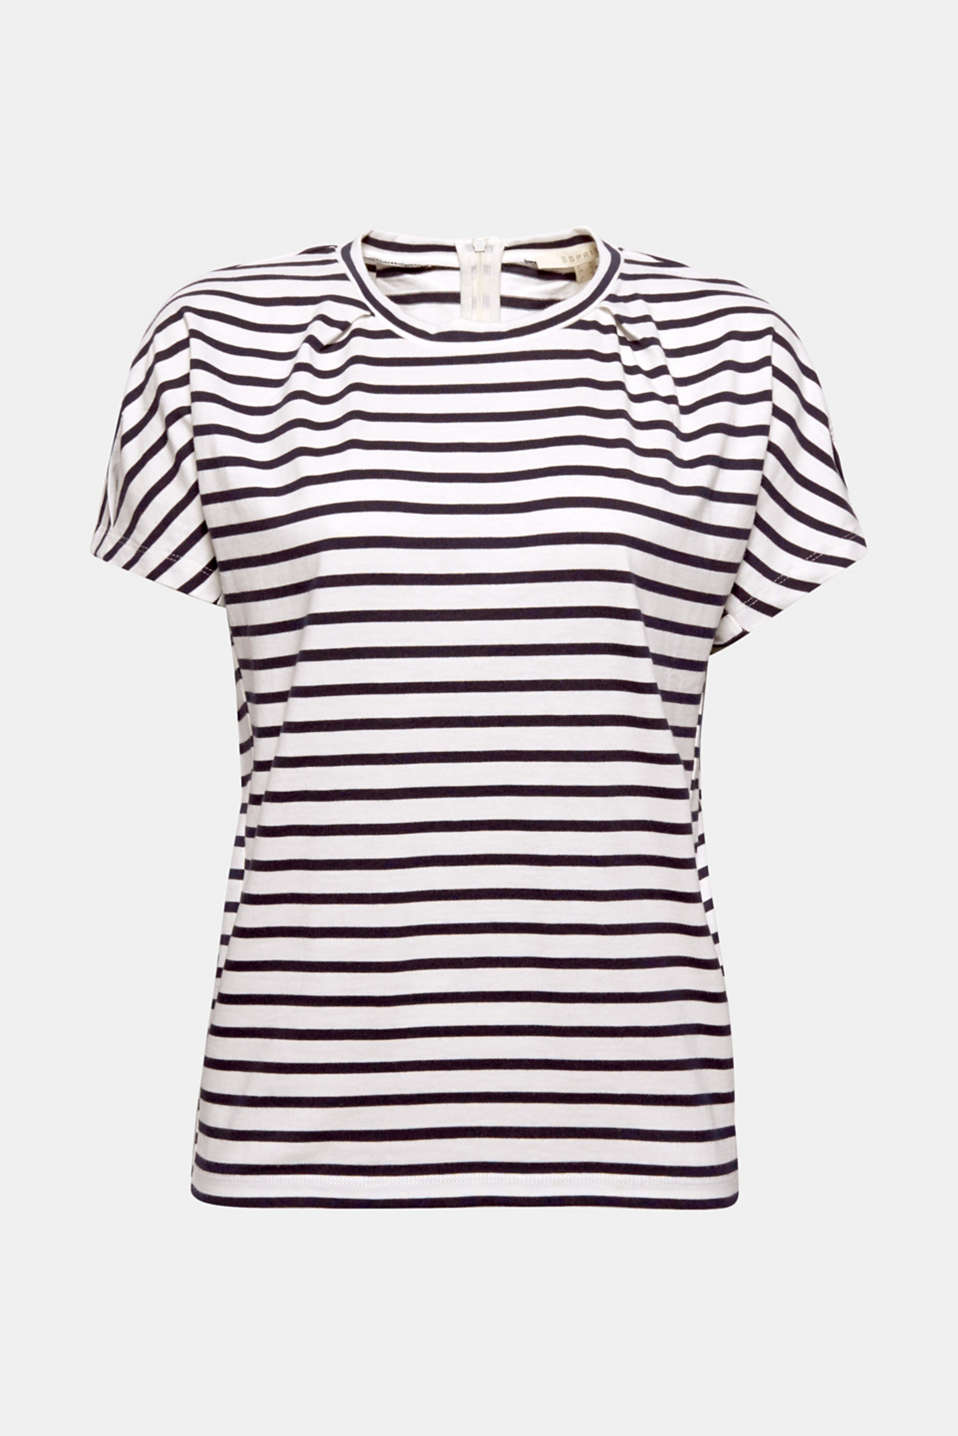 Decorative pleats and wide, cut-on sleeves give this classic striped T-shirt an ultra fashionable note.